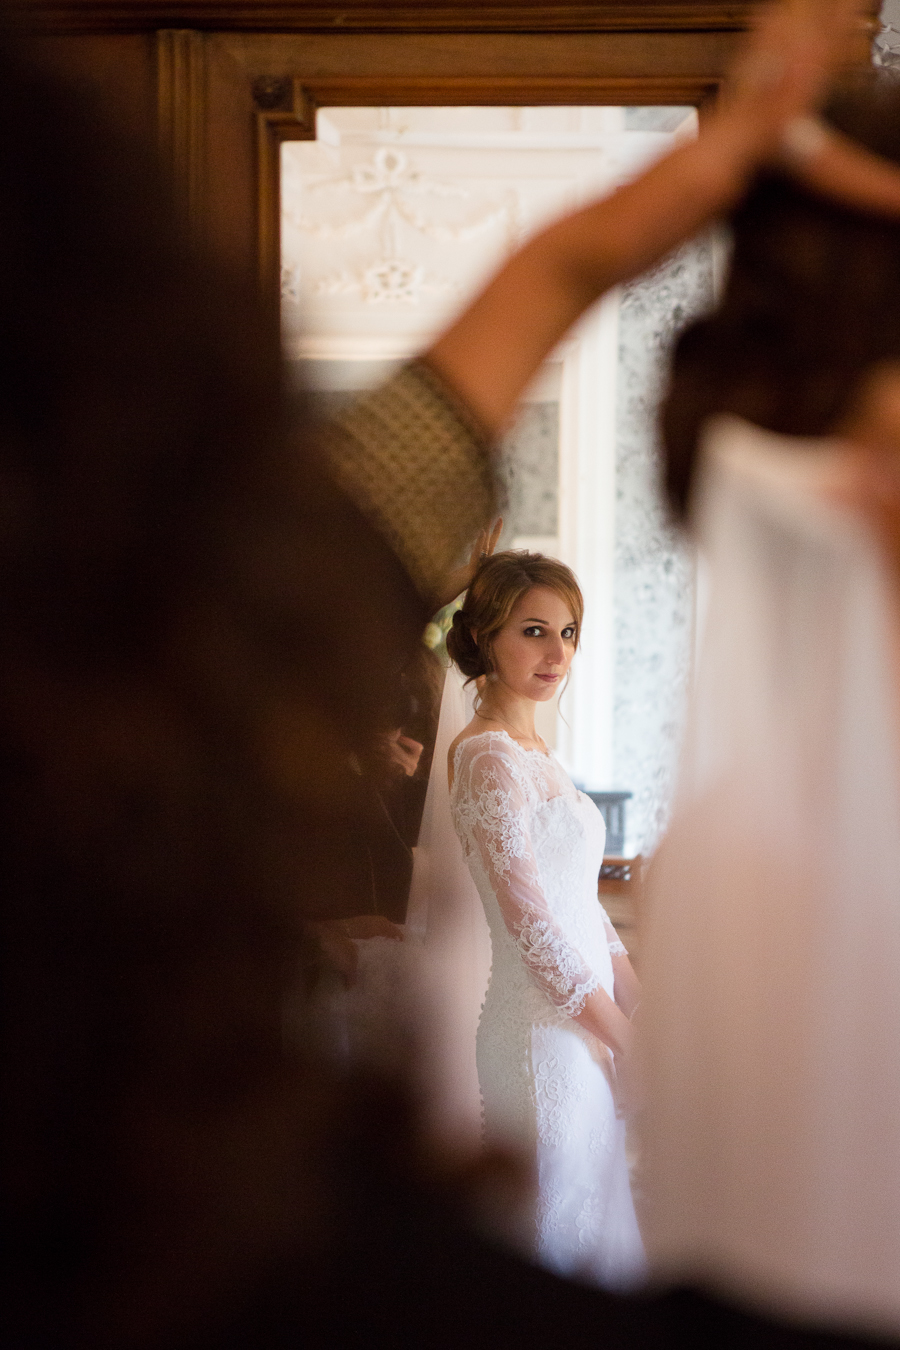 photographe-reportage-mariage-keith-flament-chateau-aveny-14